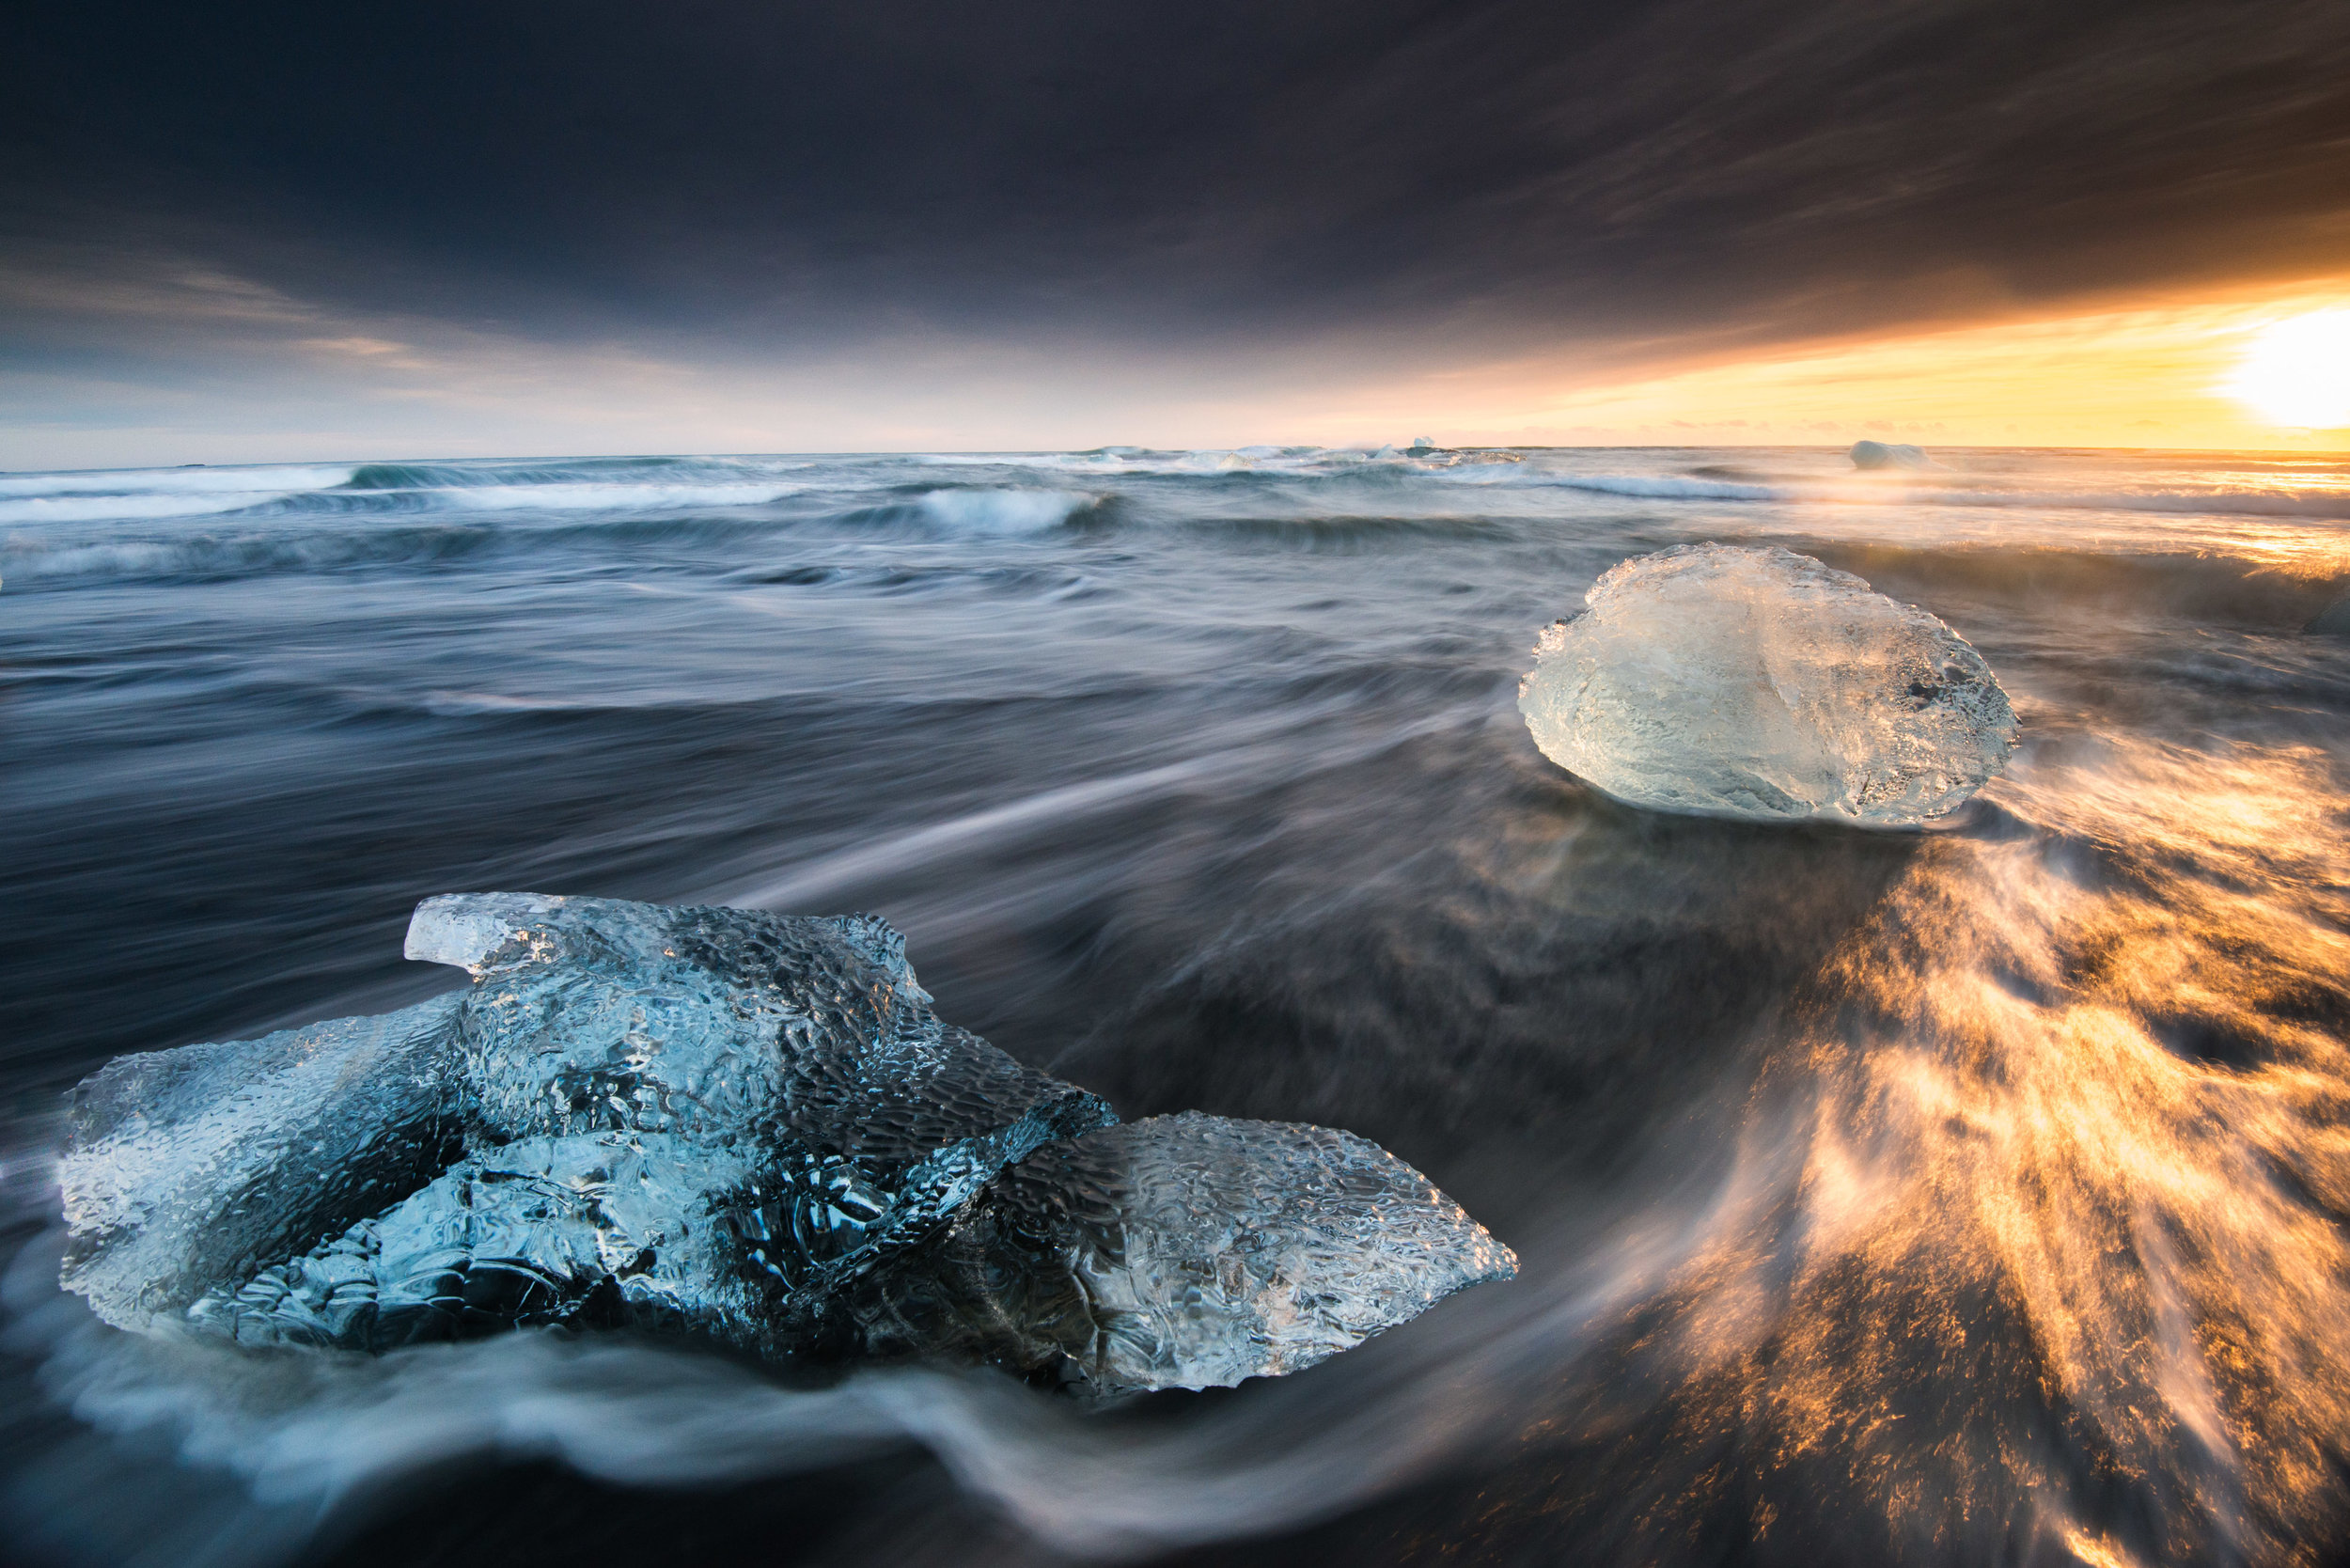 Black Sand Beach in Iceland with Ice and Sunlight